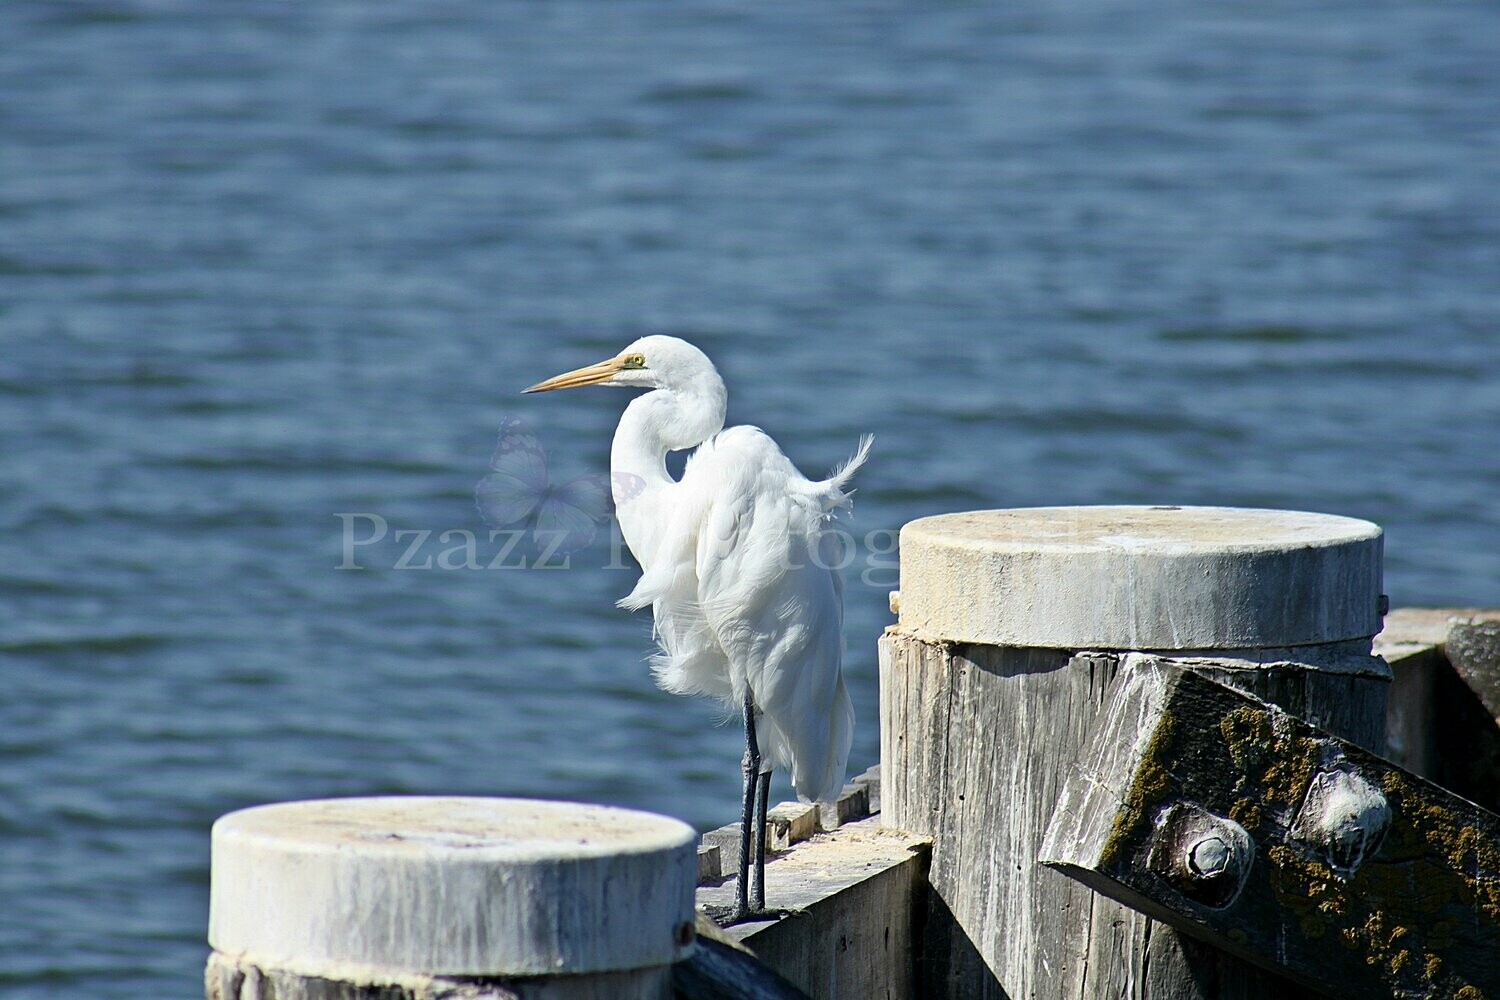 Pzazz Photography - Egret - Full Drill Diamond Painting - Specially ordered for you. Delivery is approximately 4 - 6 weeks.